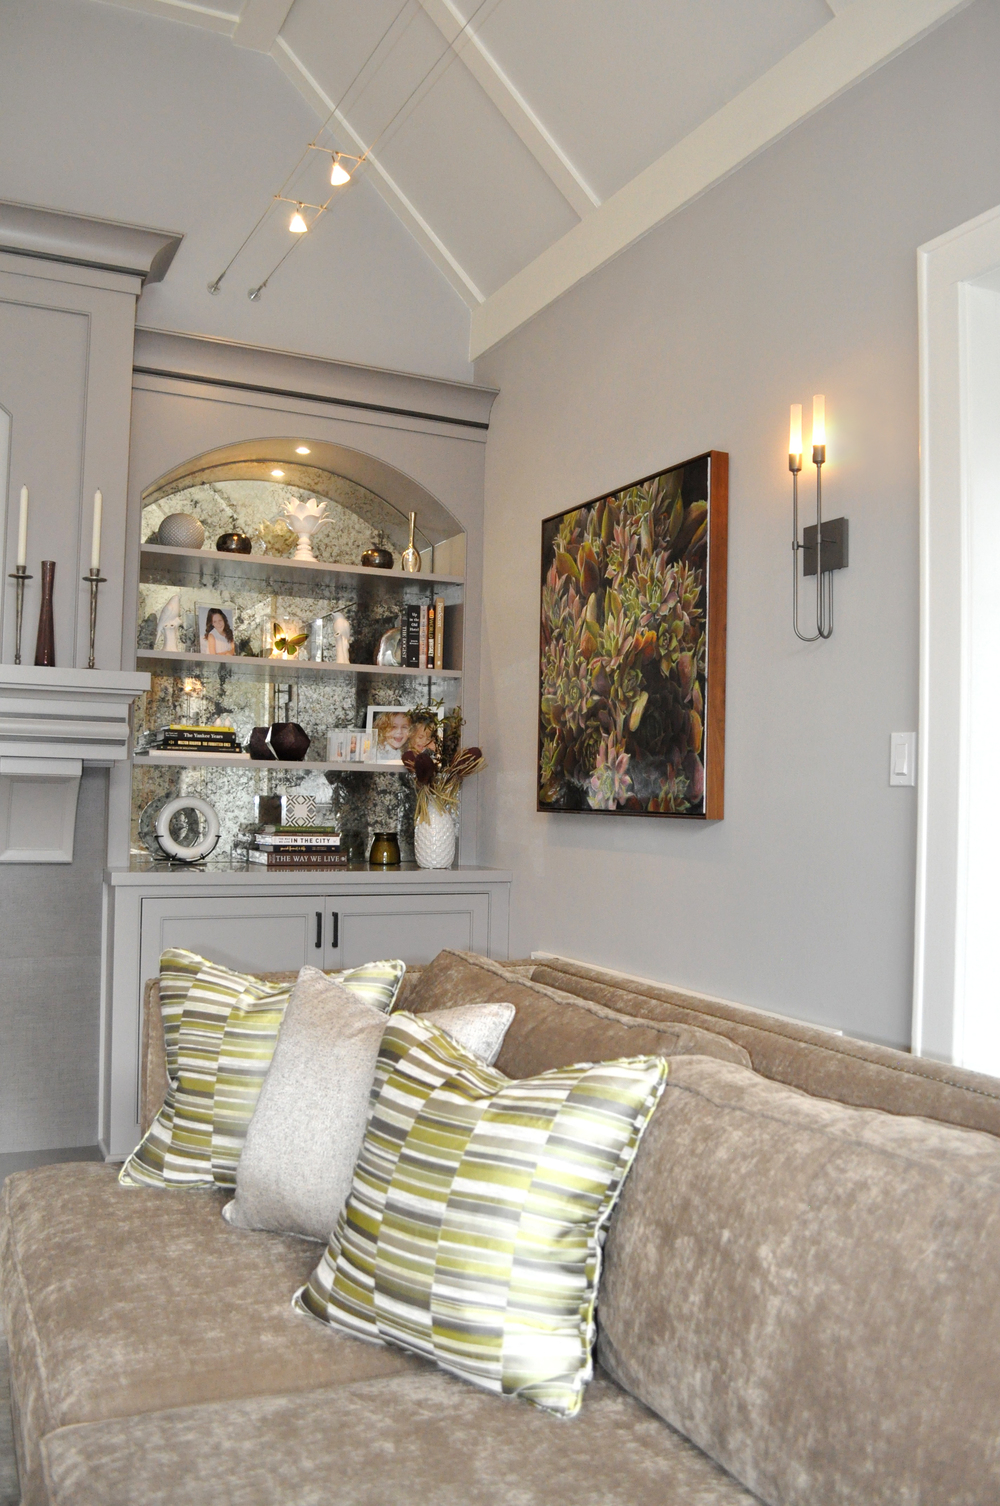 KAM DESIGN_Interior Designer Kim A Mitchell_Larchmont NY_Grey_Chartreuse Green_Plum_Living Room_Custom Built-in_Antique Mirror_Shelving_Relaxed Elegance_Gray Custom Millwork_2016.jpg